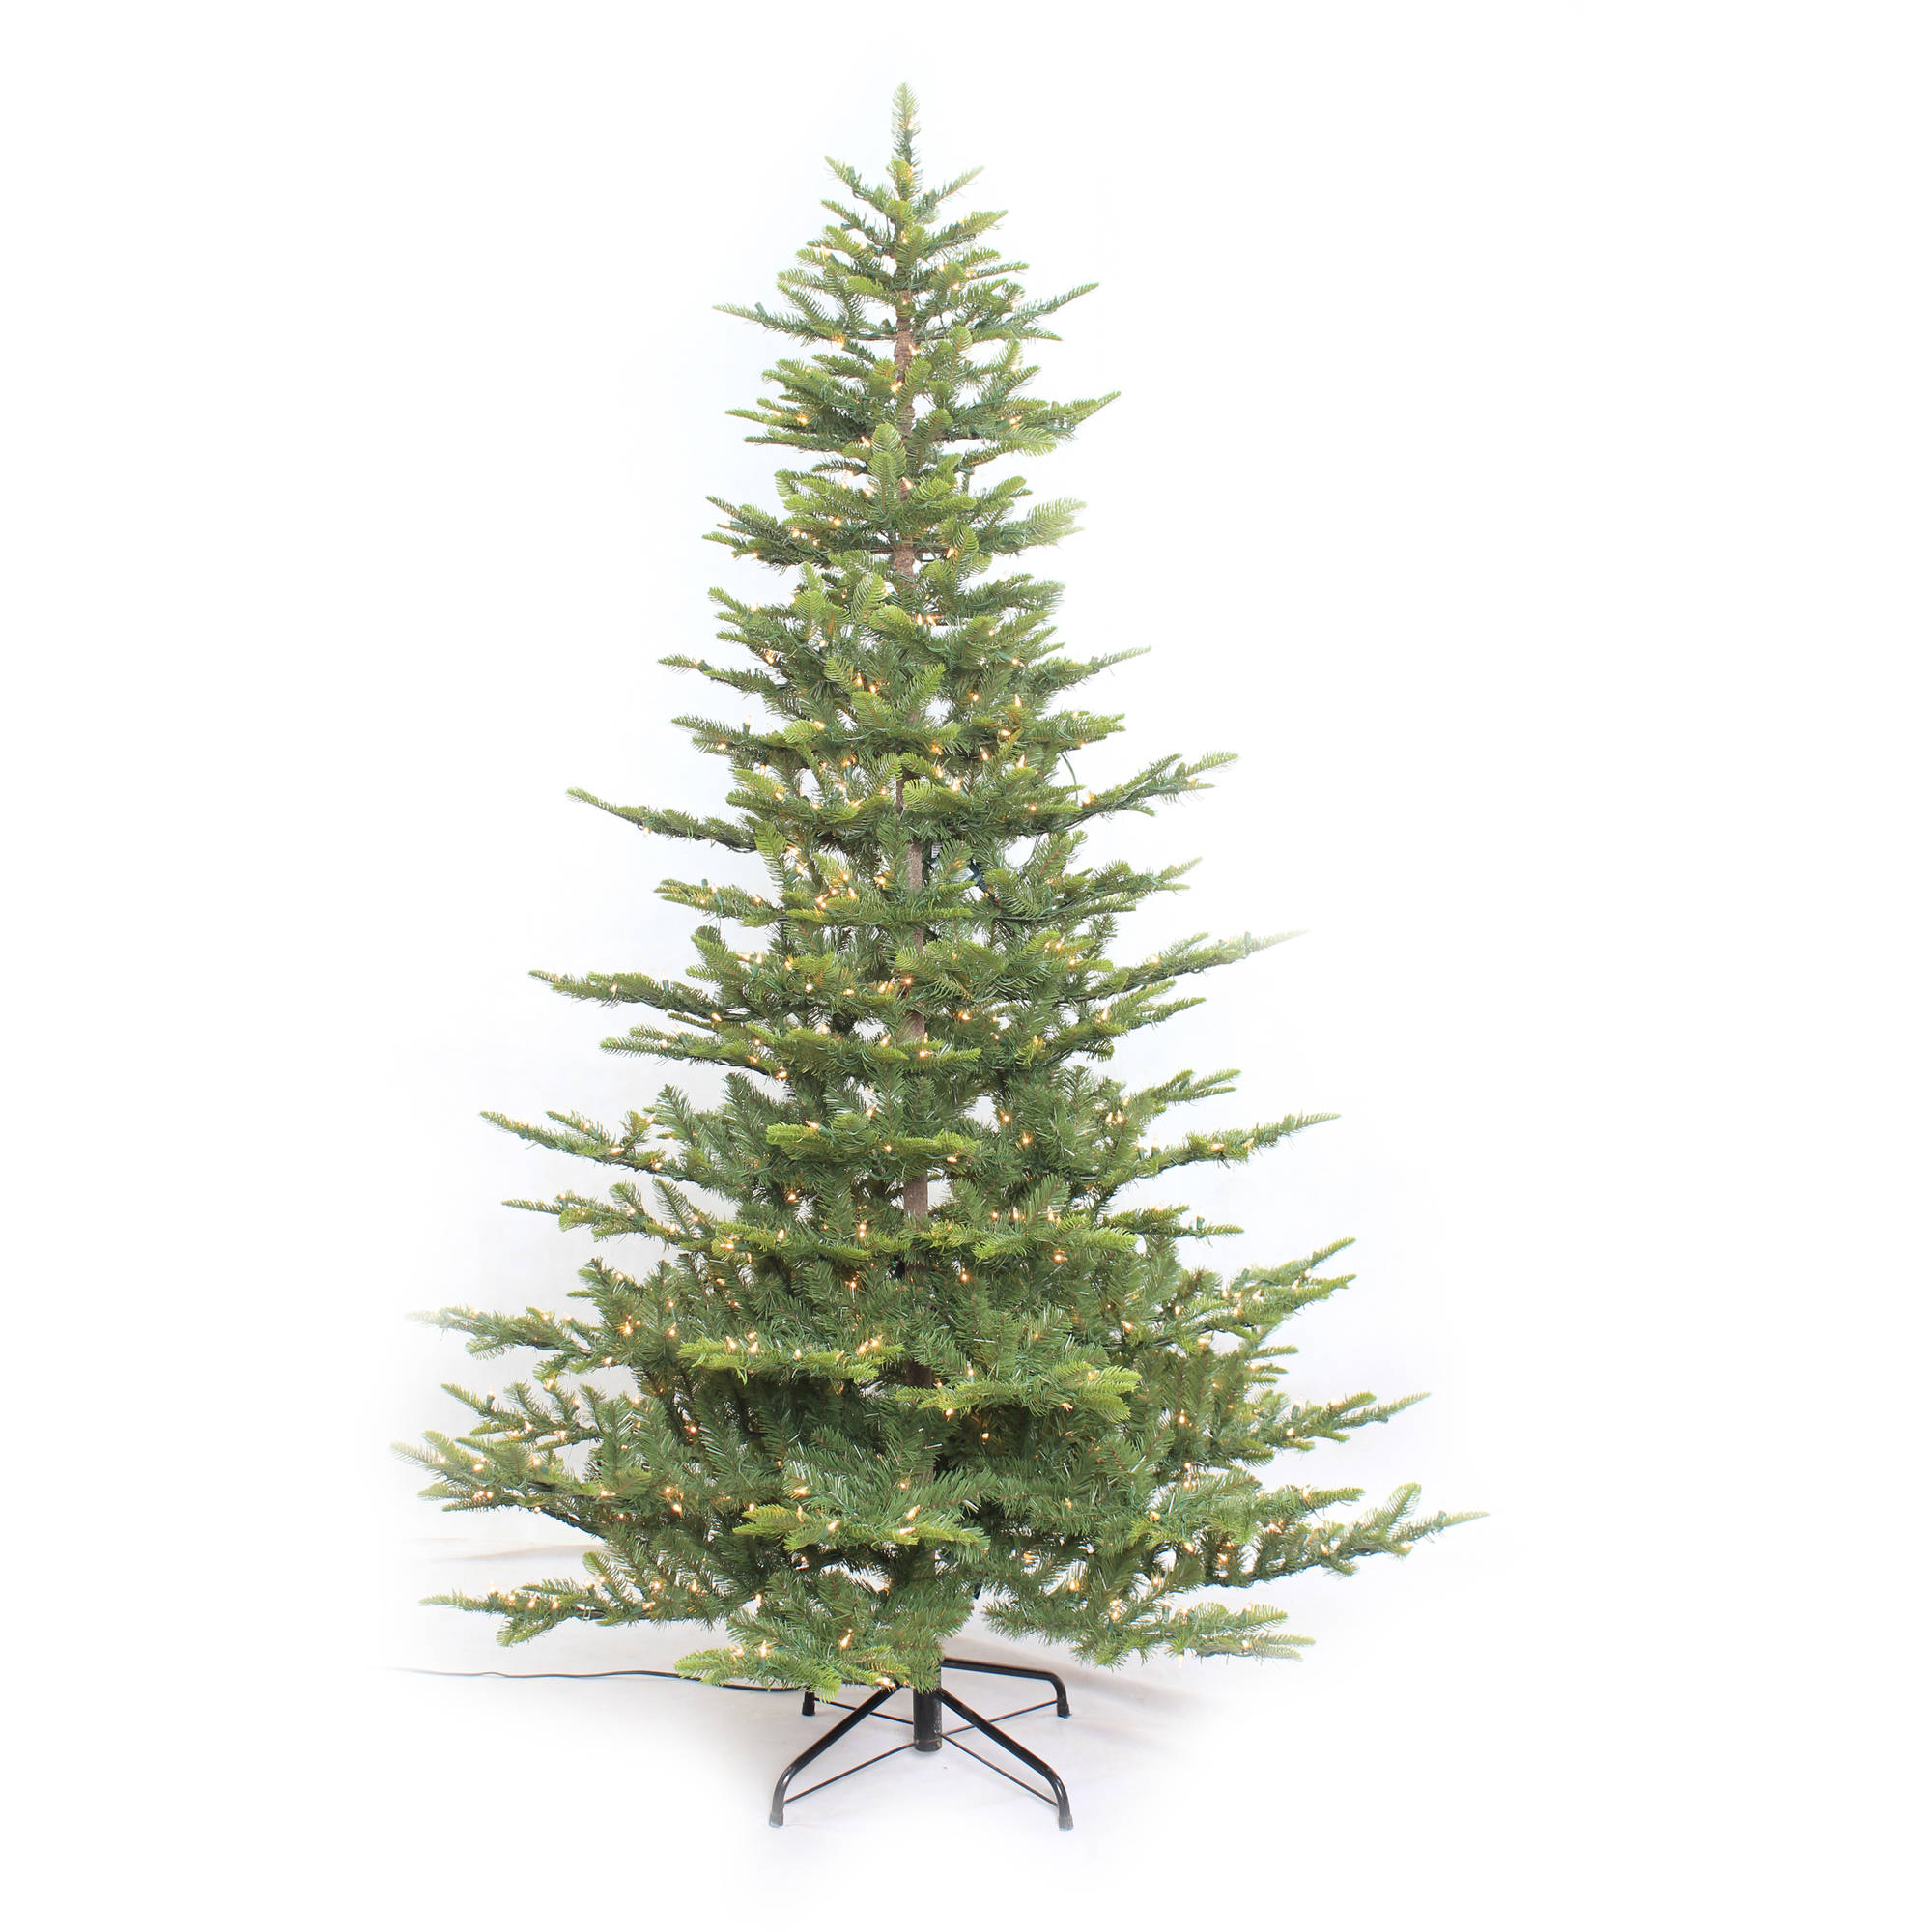 Artificial Christmas Tree Ratings